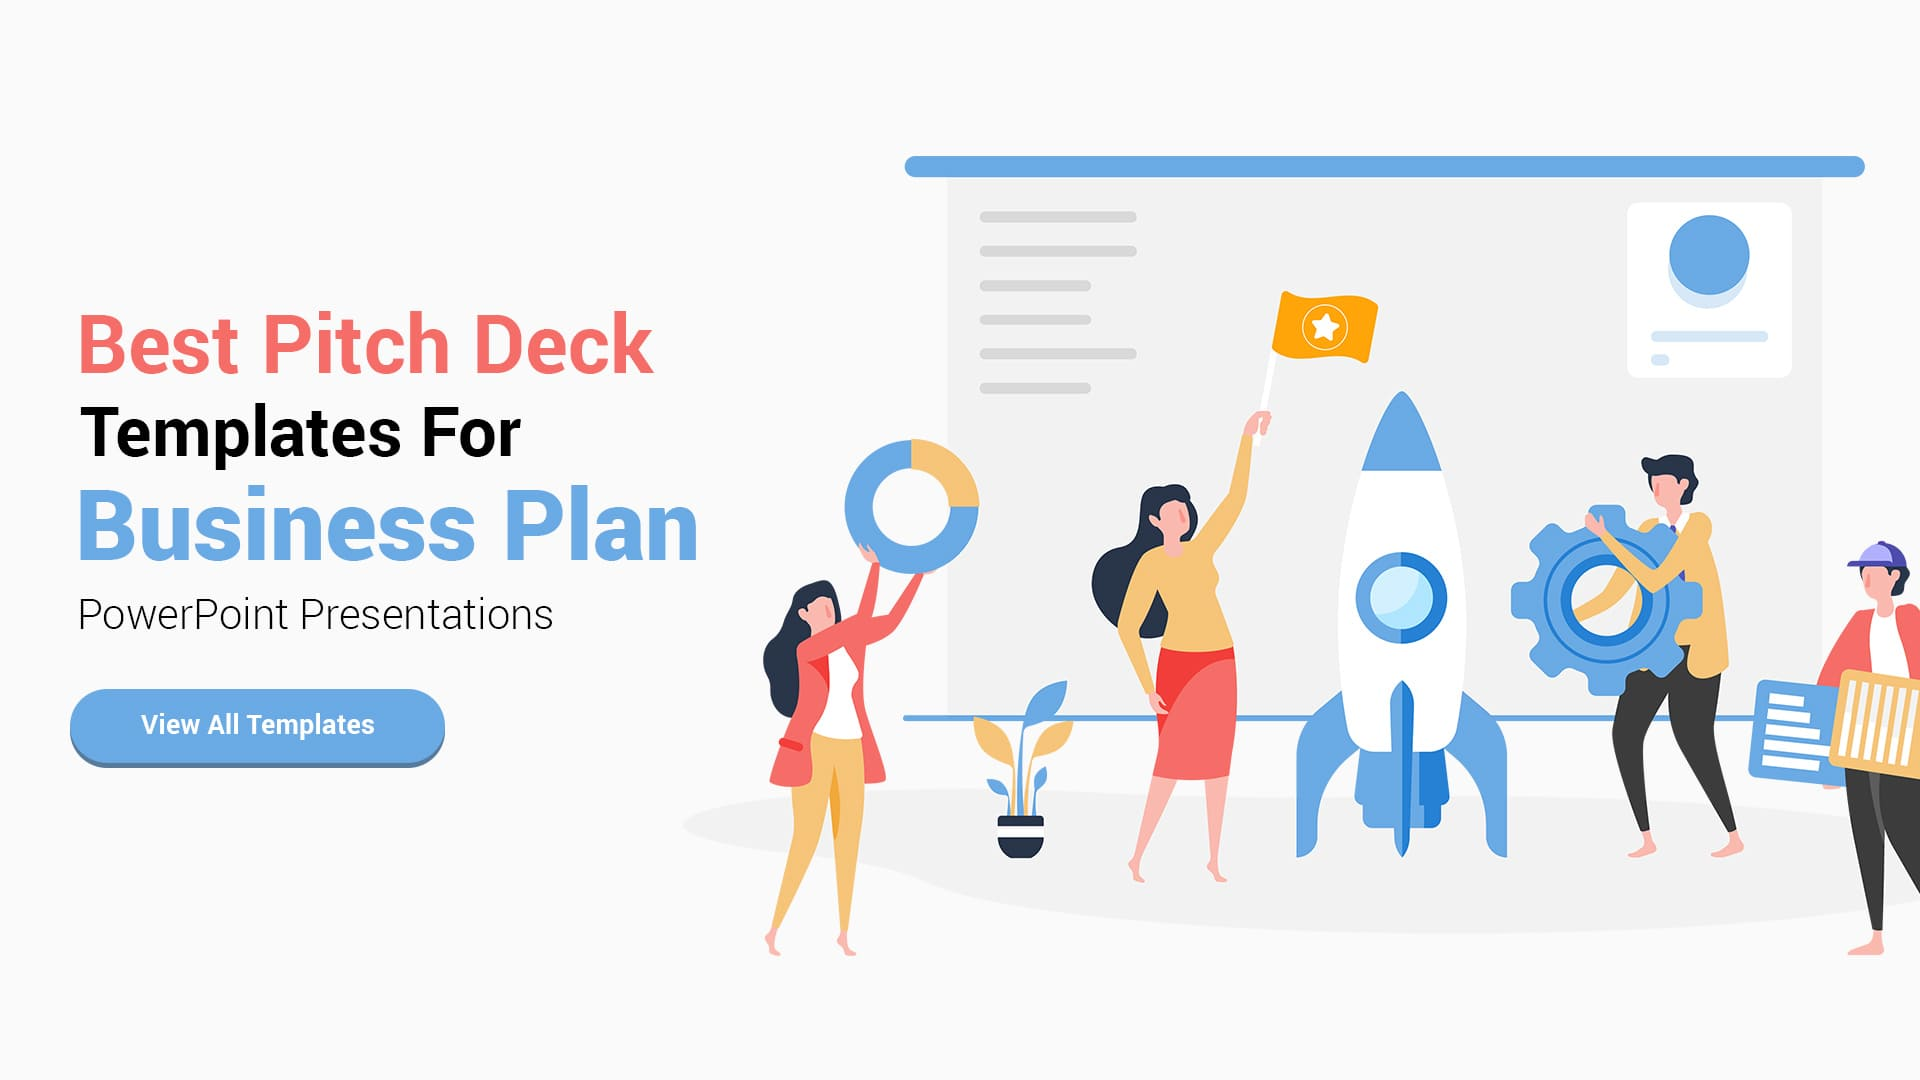 Best-Pitch-Deck-PowerPoint-Templates-For-Business-Plan